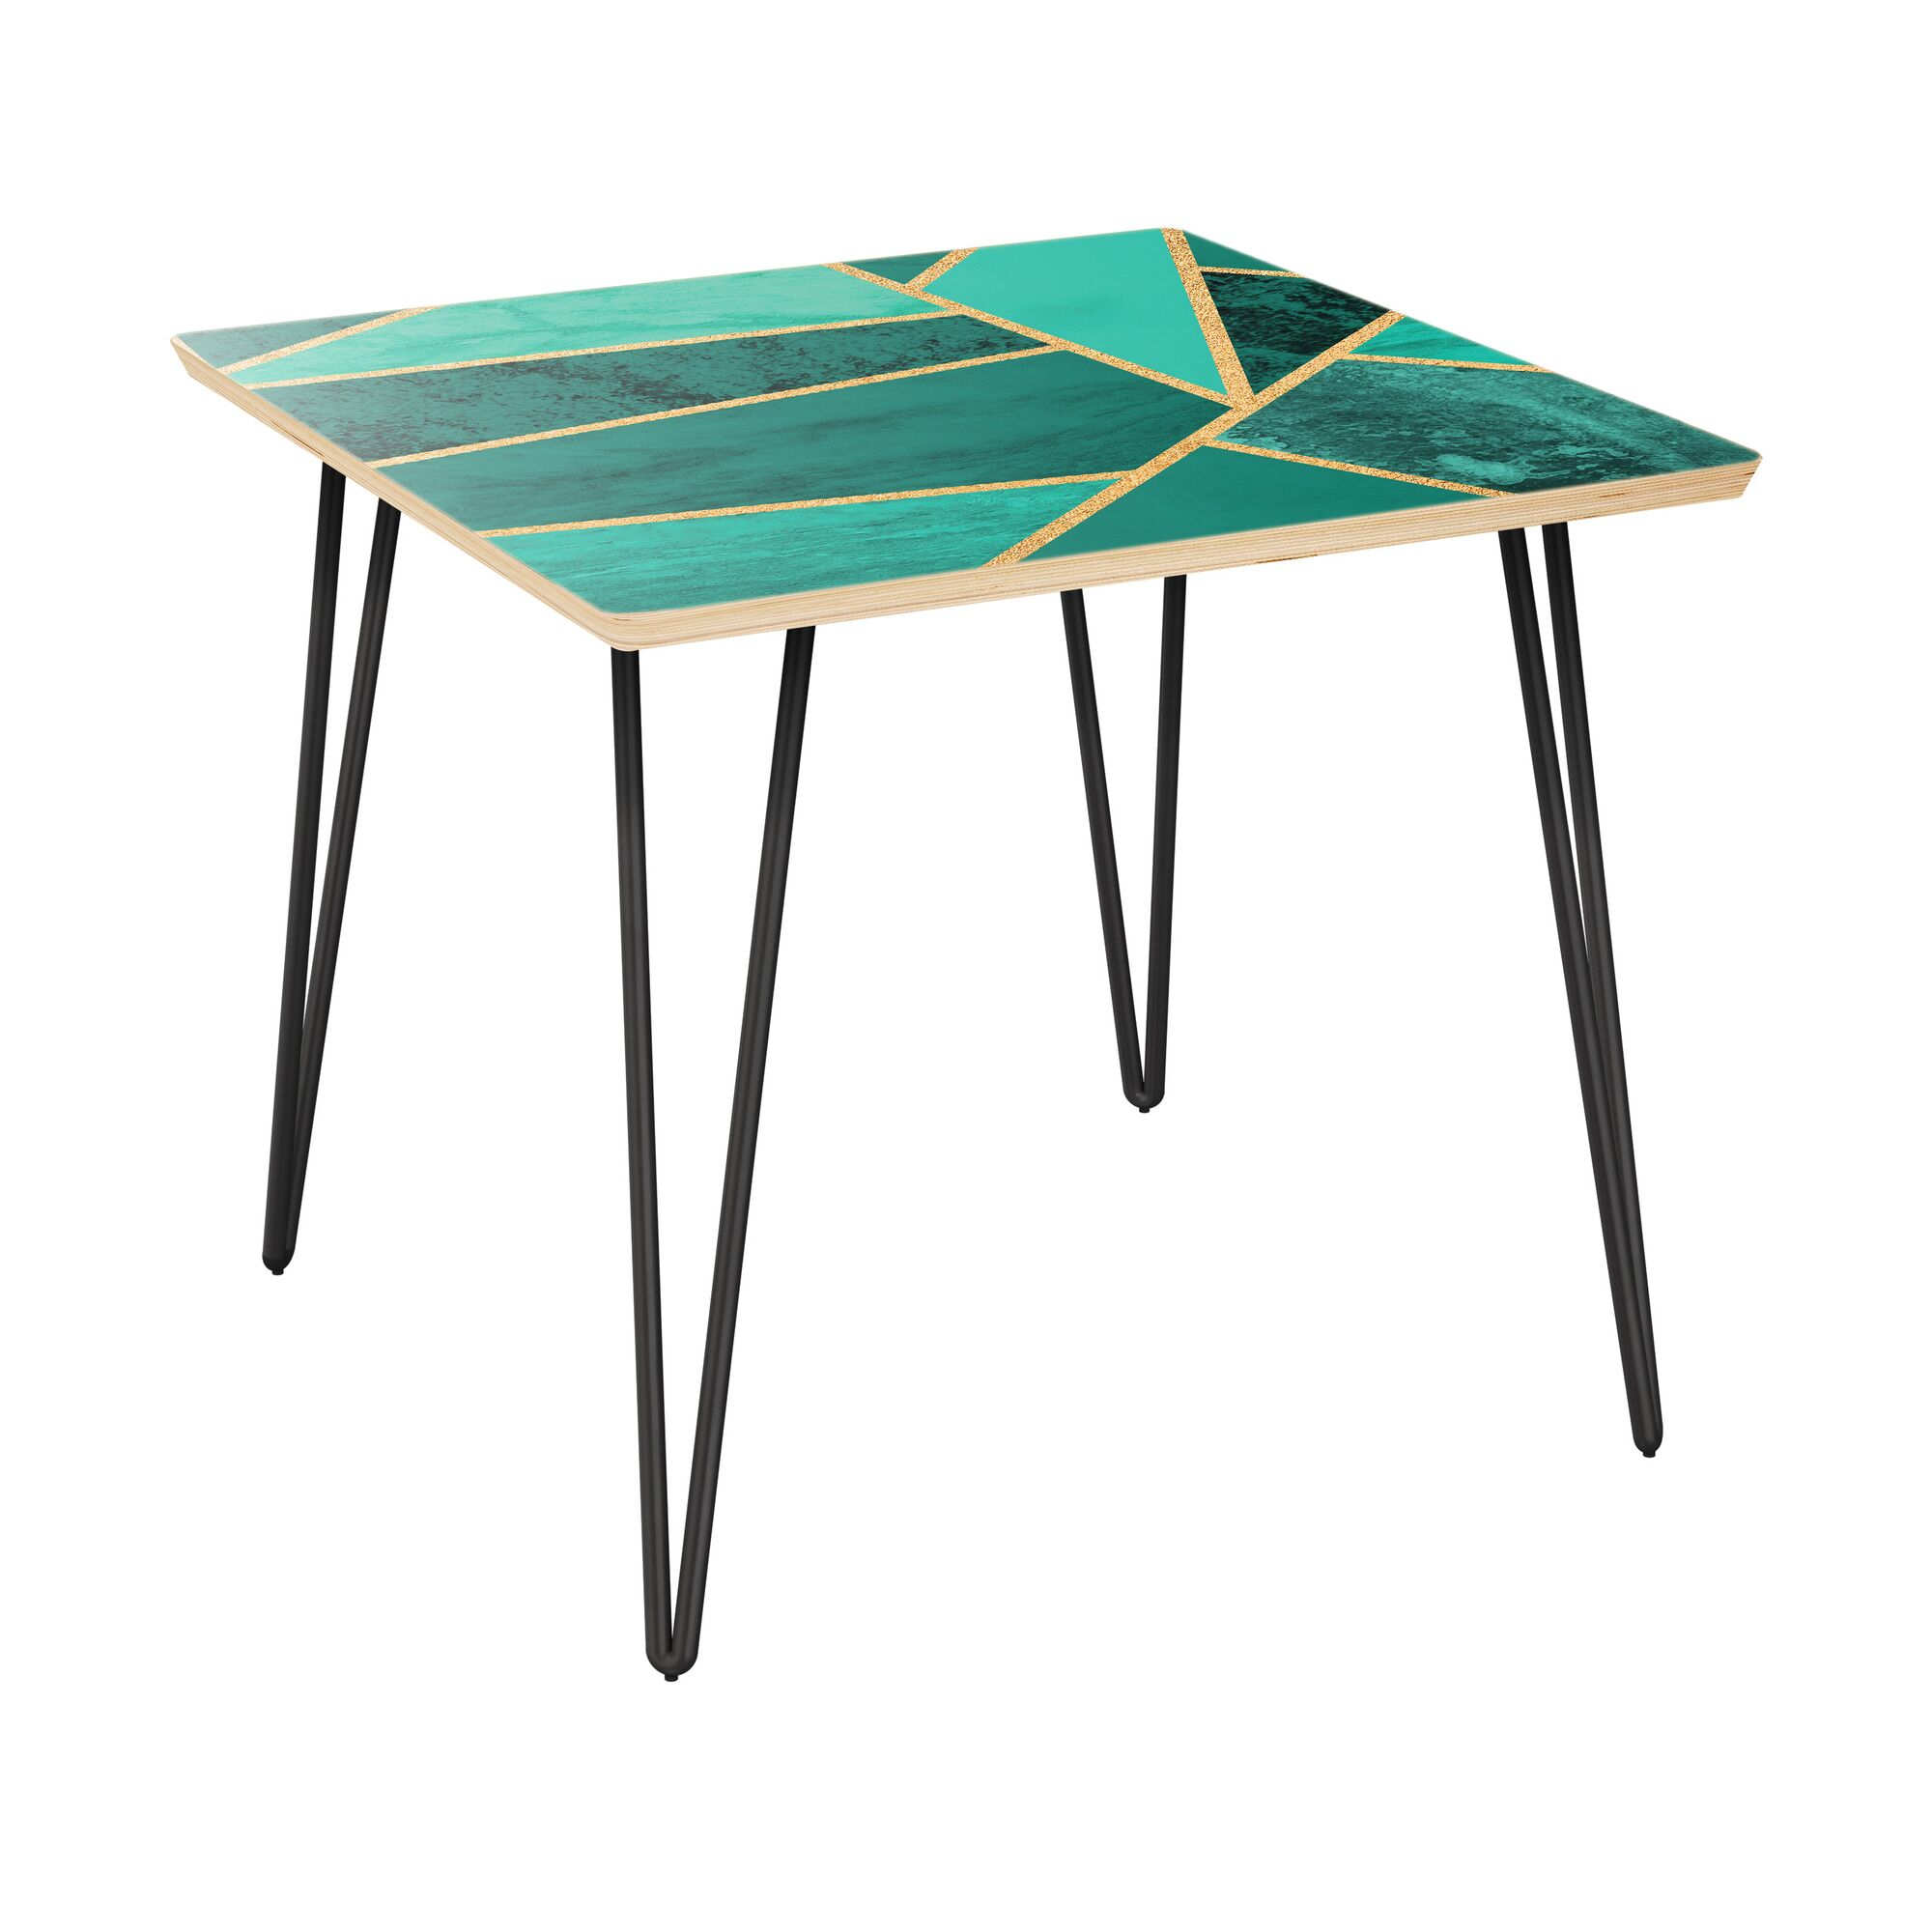 Mcgehee End Table Table Top Color: Natural/Green, Table Base Color: Black